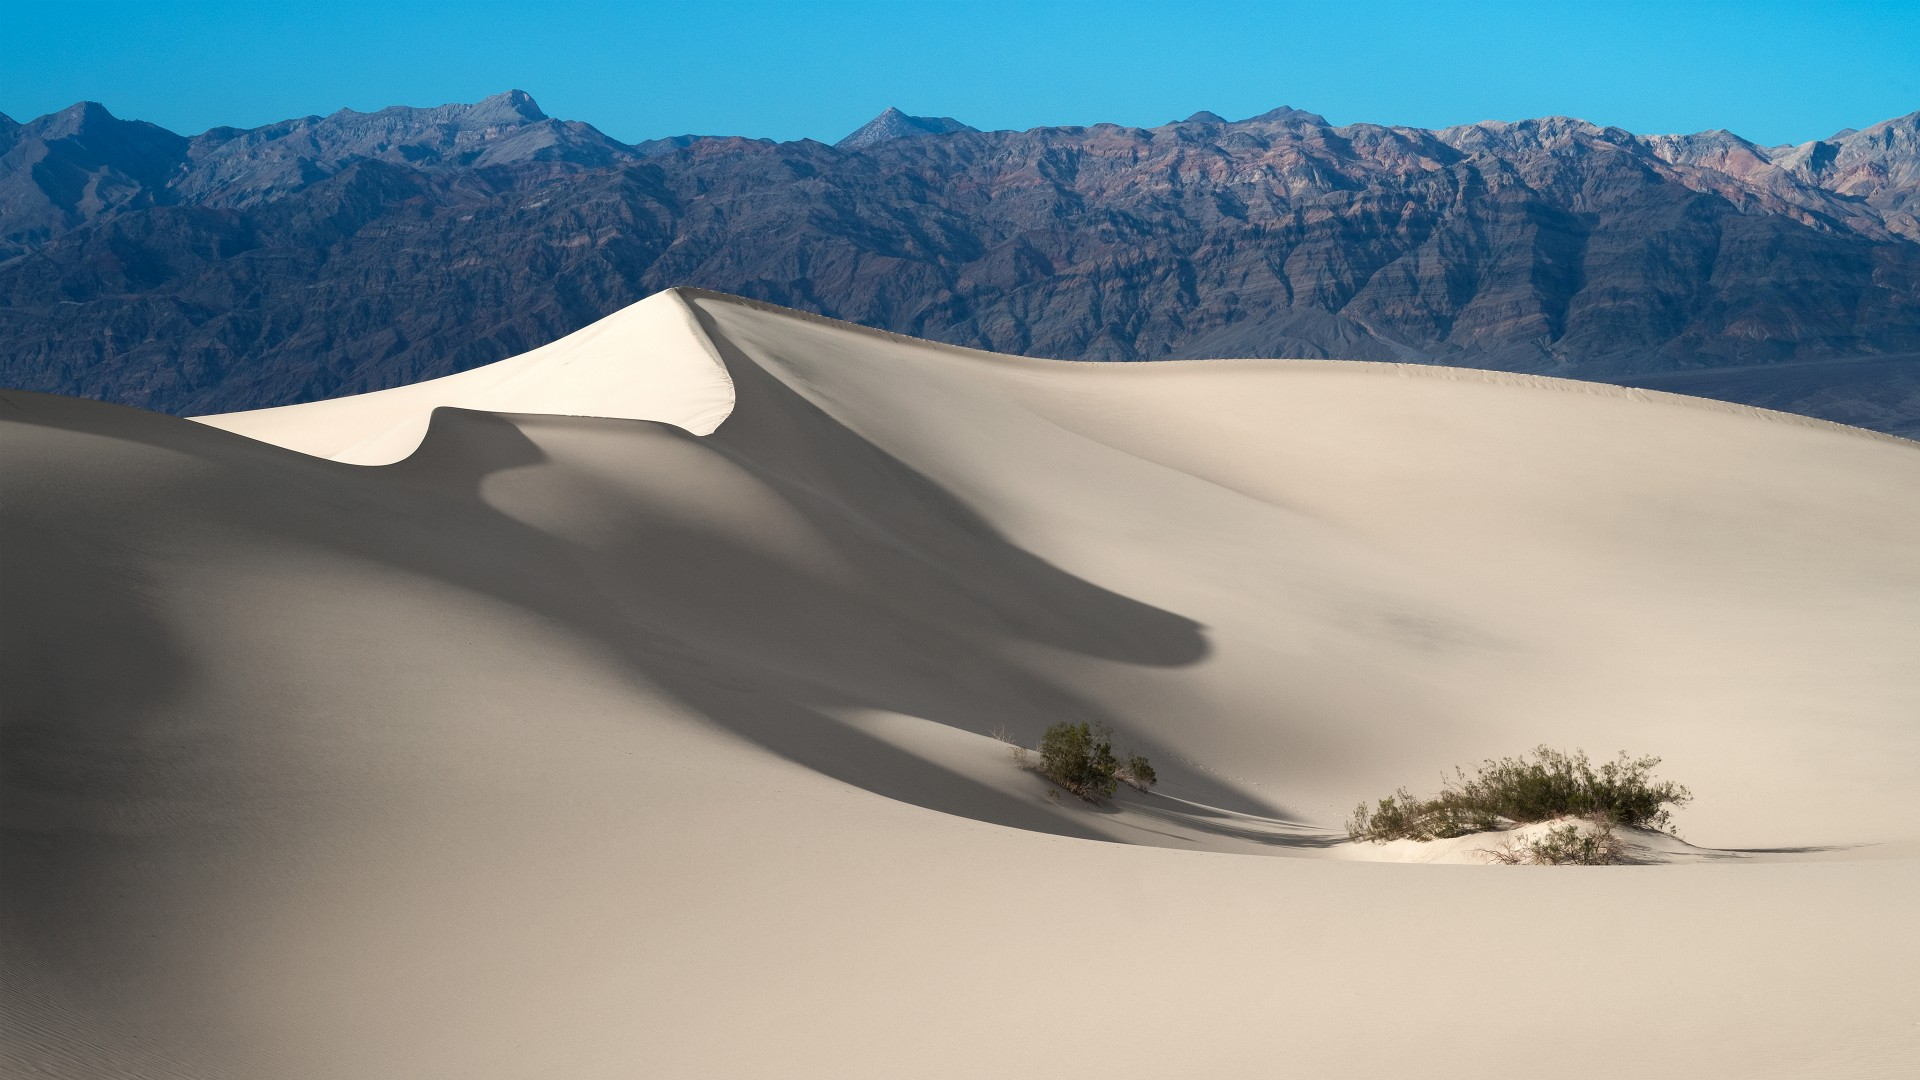 Cute Love Anime Wallpaper Sand Dunes Death Valley National Park Wallpapers Hd